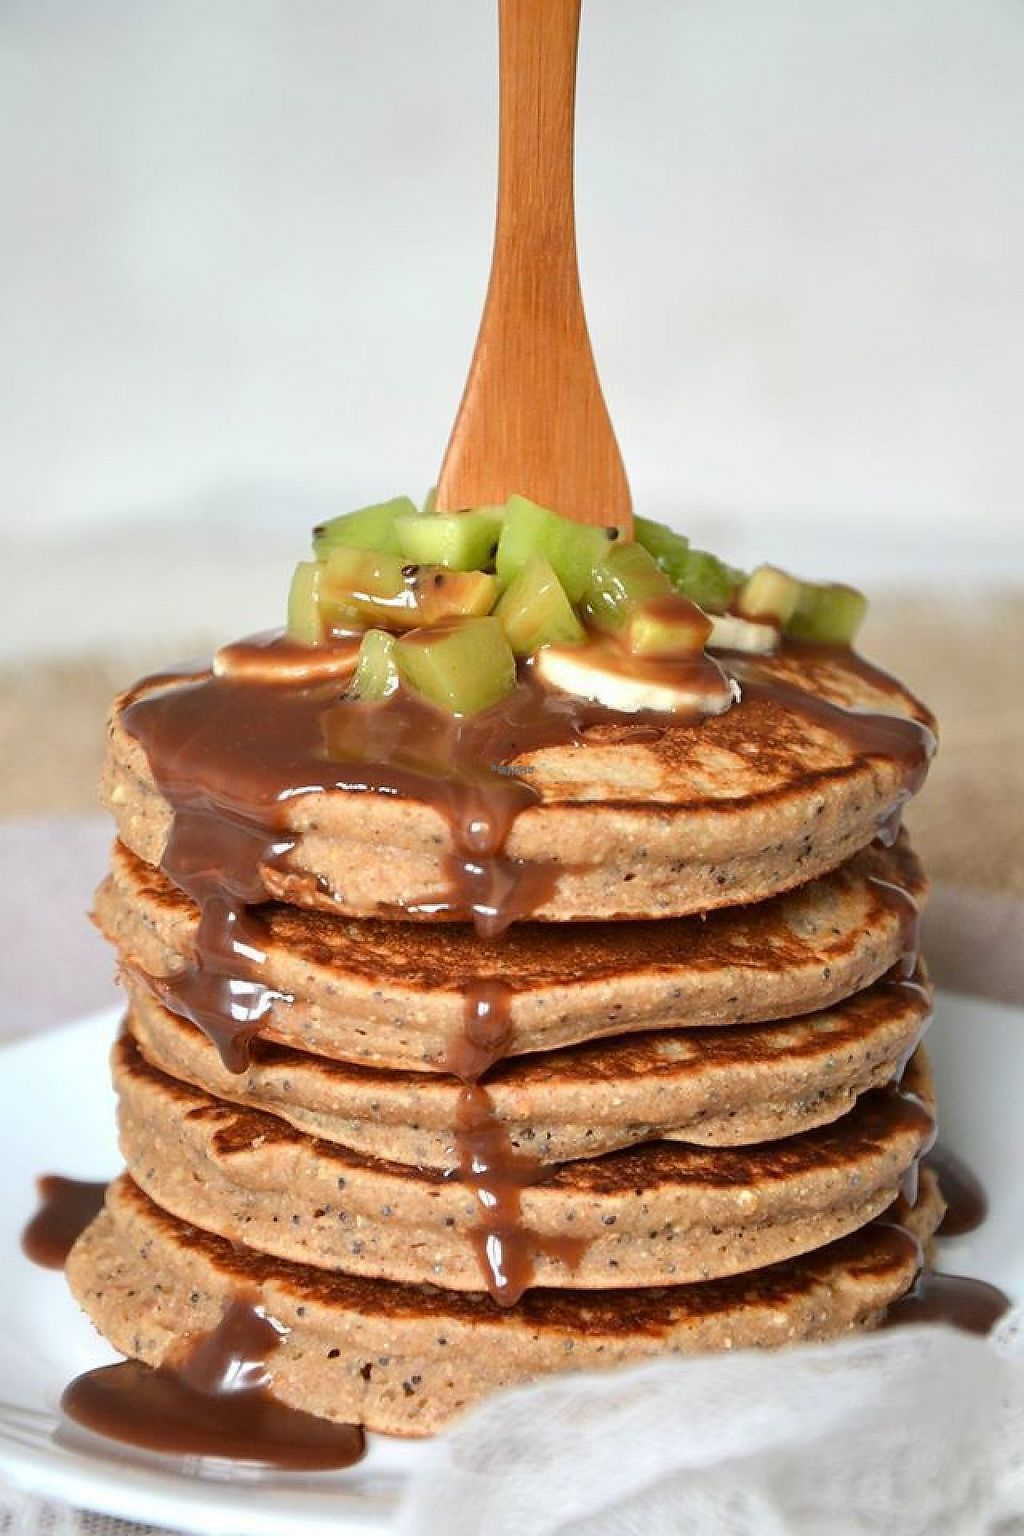 """Photo of La Vie Claire  by <a href=""""/members/profile/community"""">community</a> <br/>vegan hazelnut pancakes  <br/> February 4, 2017  - <a href='/contact/abuse/image/68768/221797'>Report</a>"""